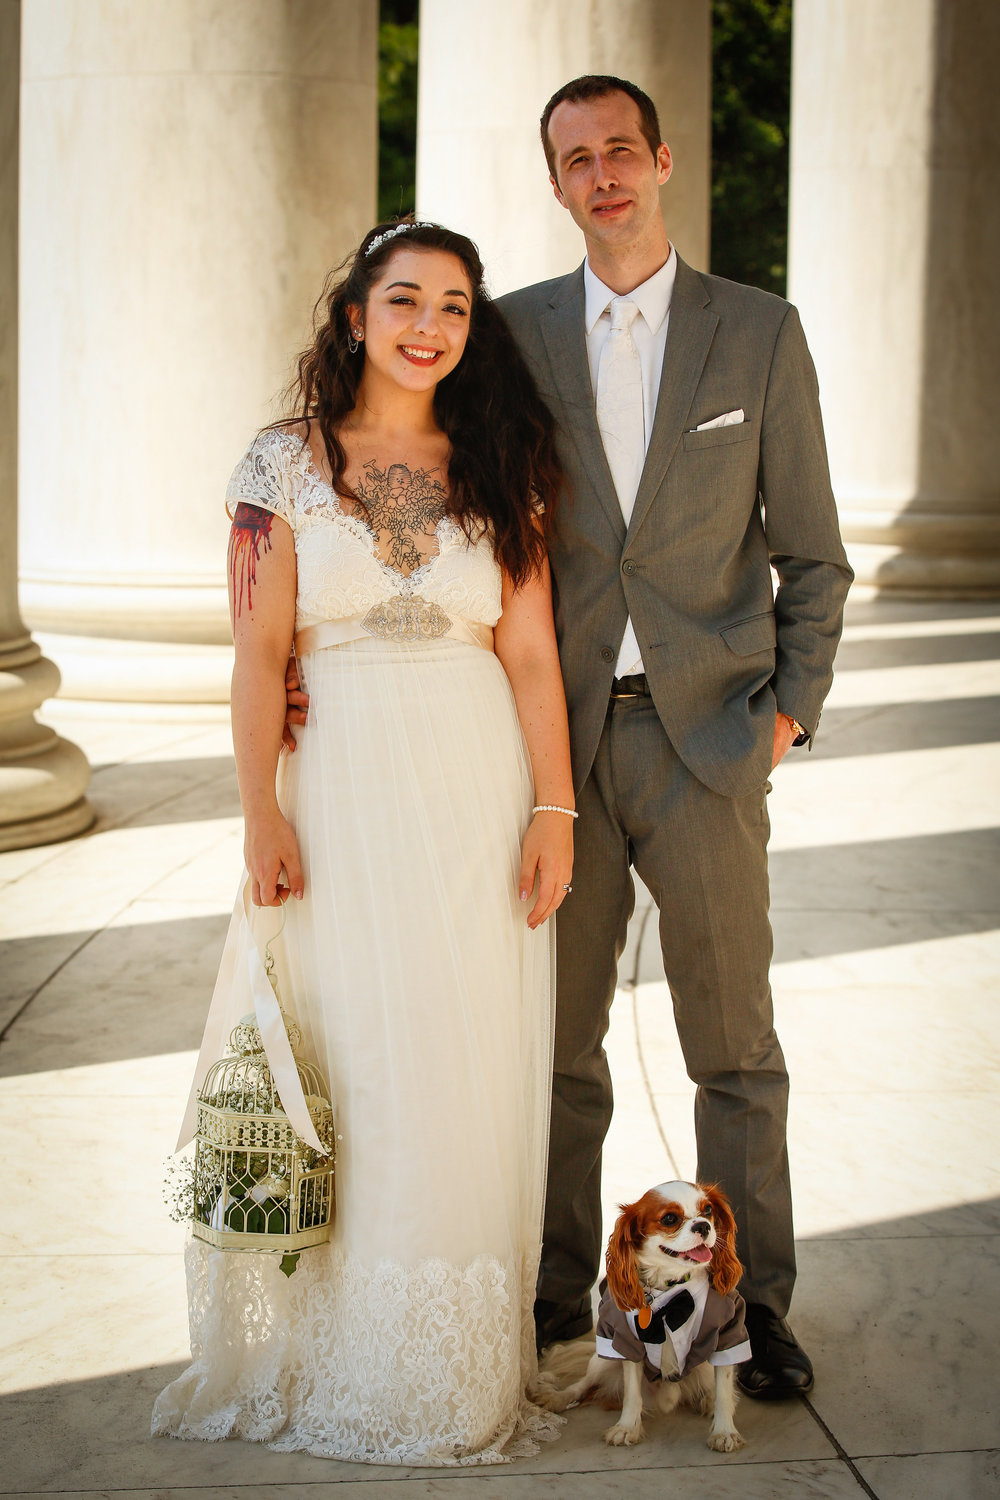 bringing-your-dog-to-your-wedding